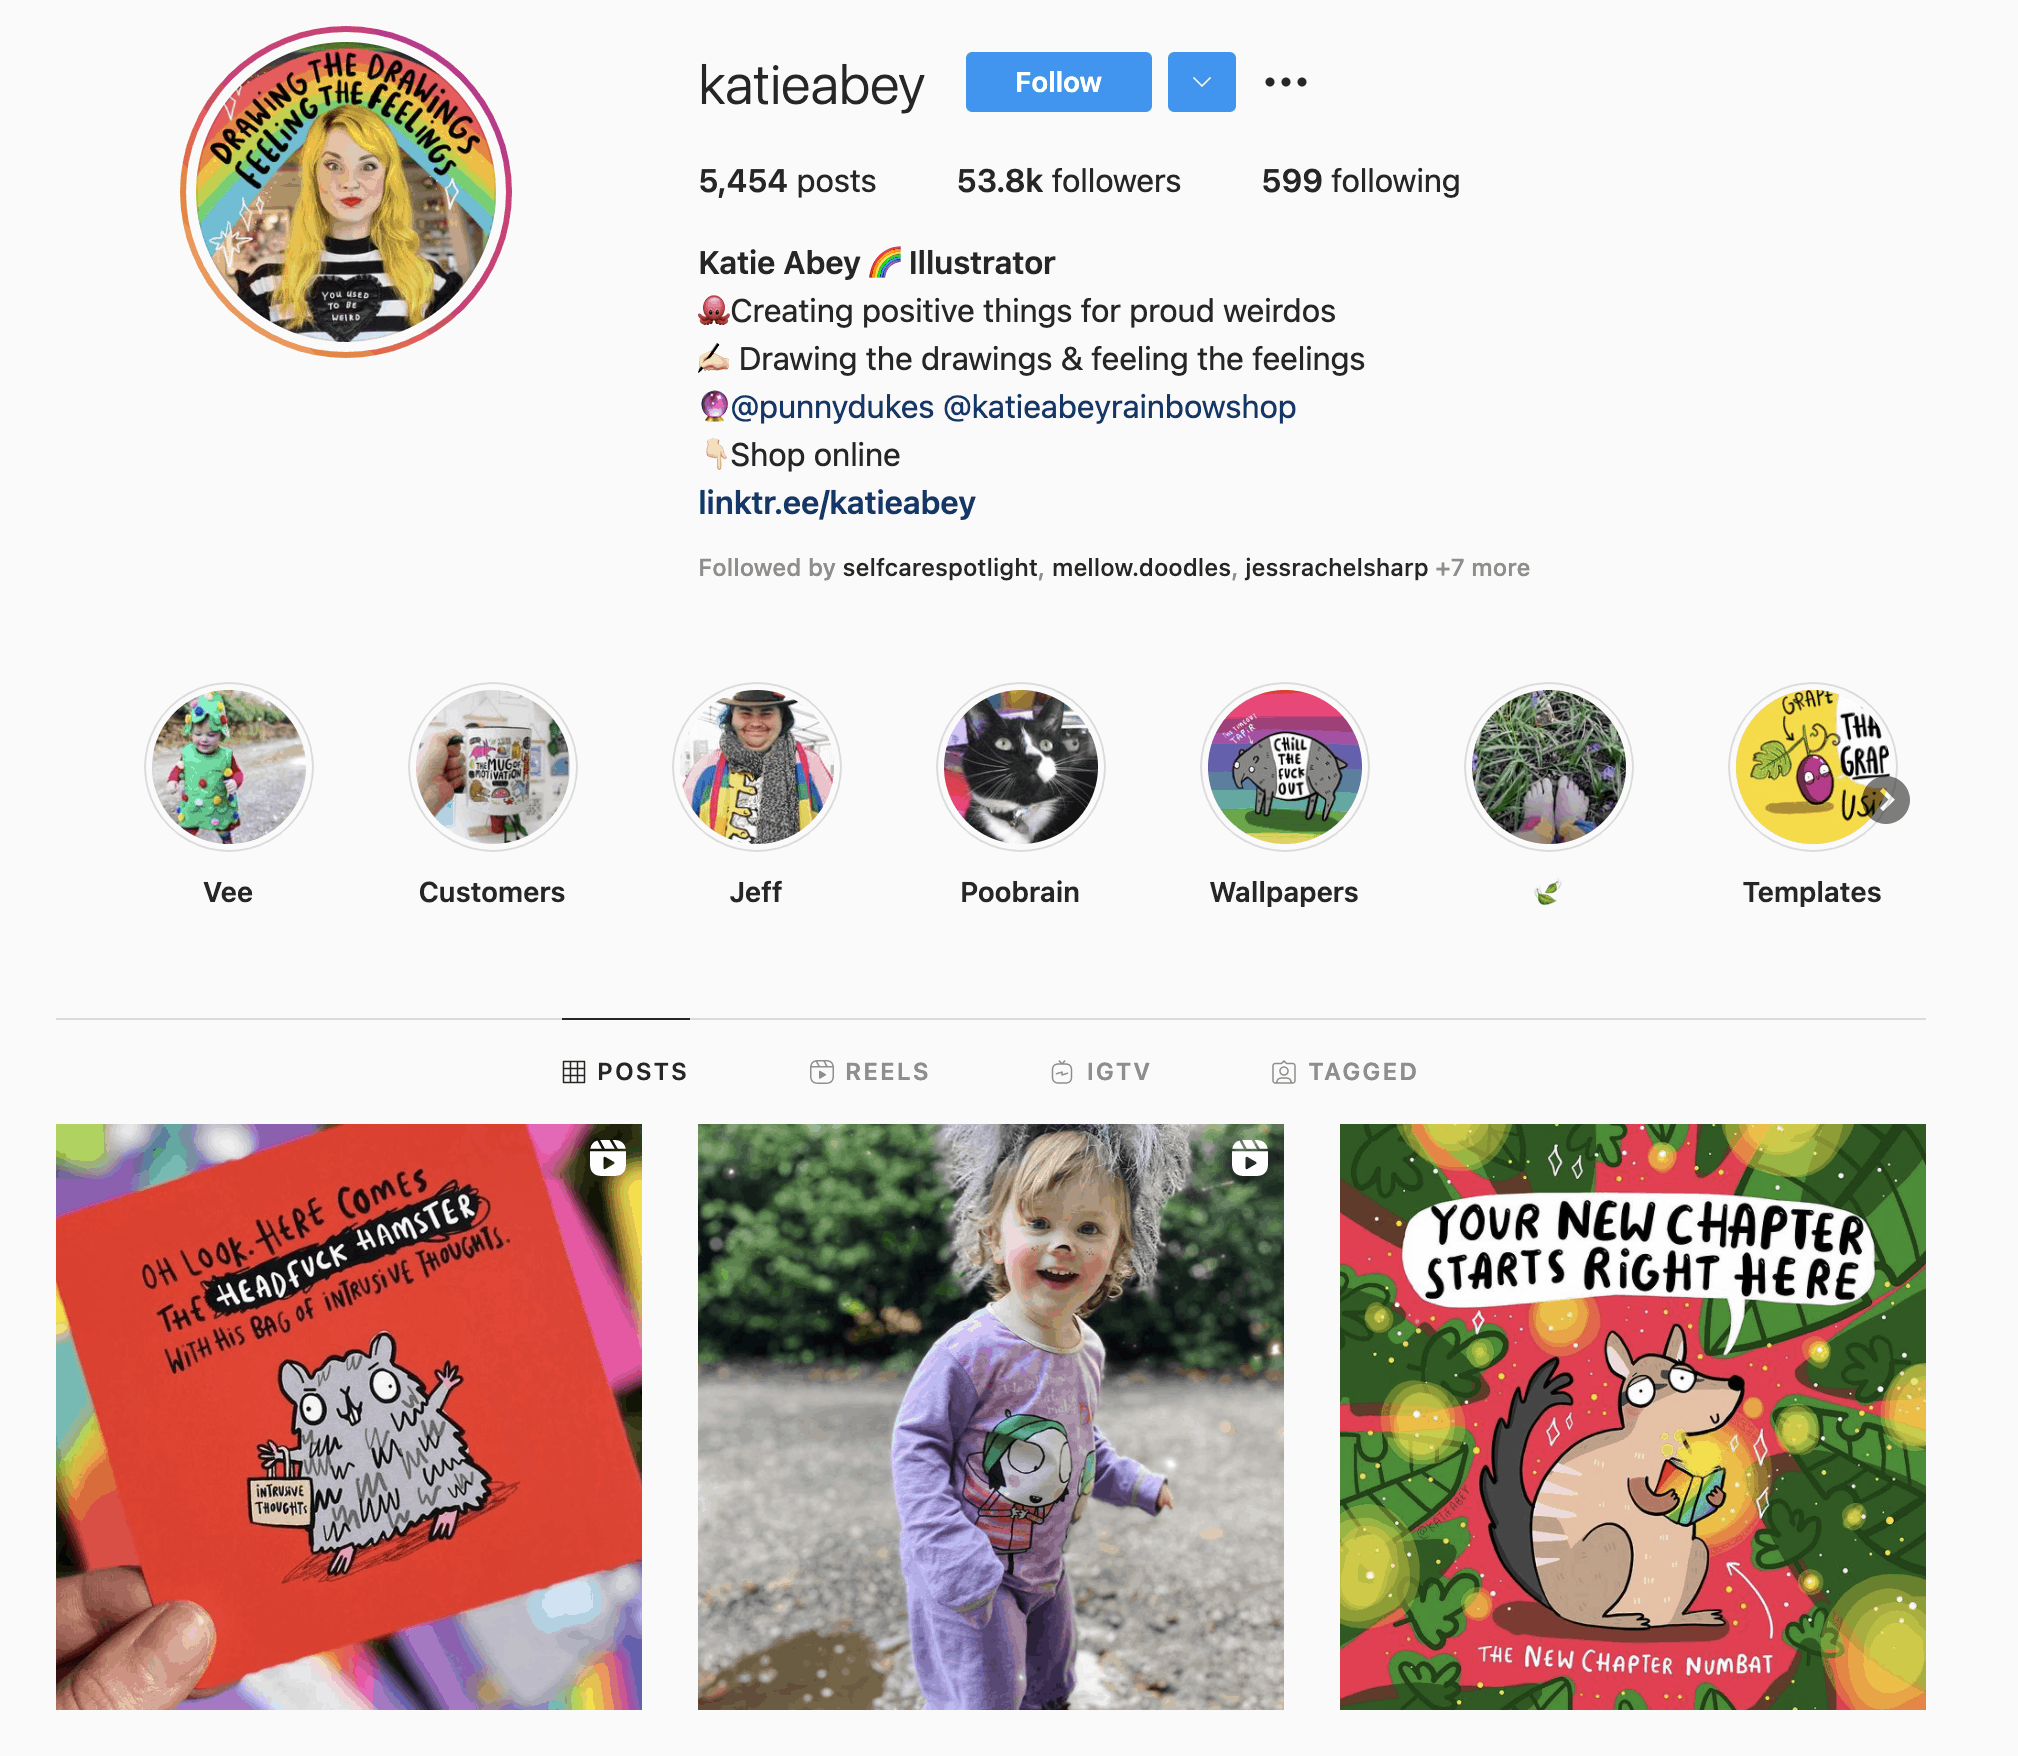 Katie Abey has a beautiful instagram page where she showcases her colorful artwork!